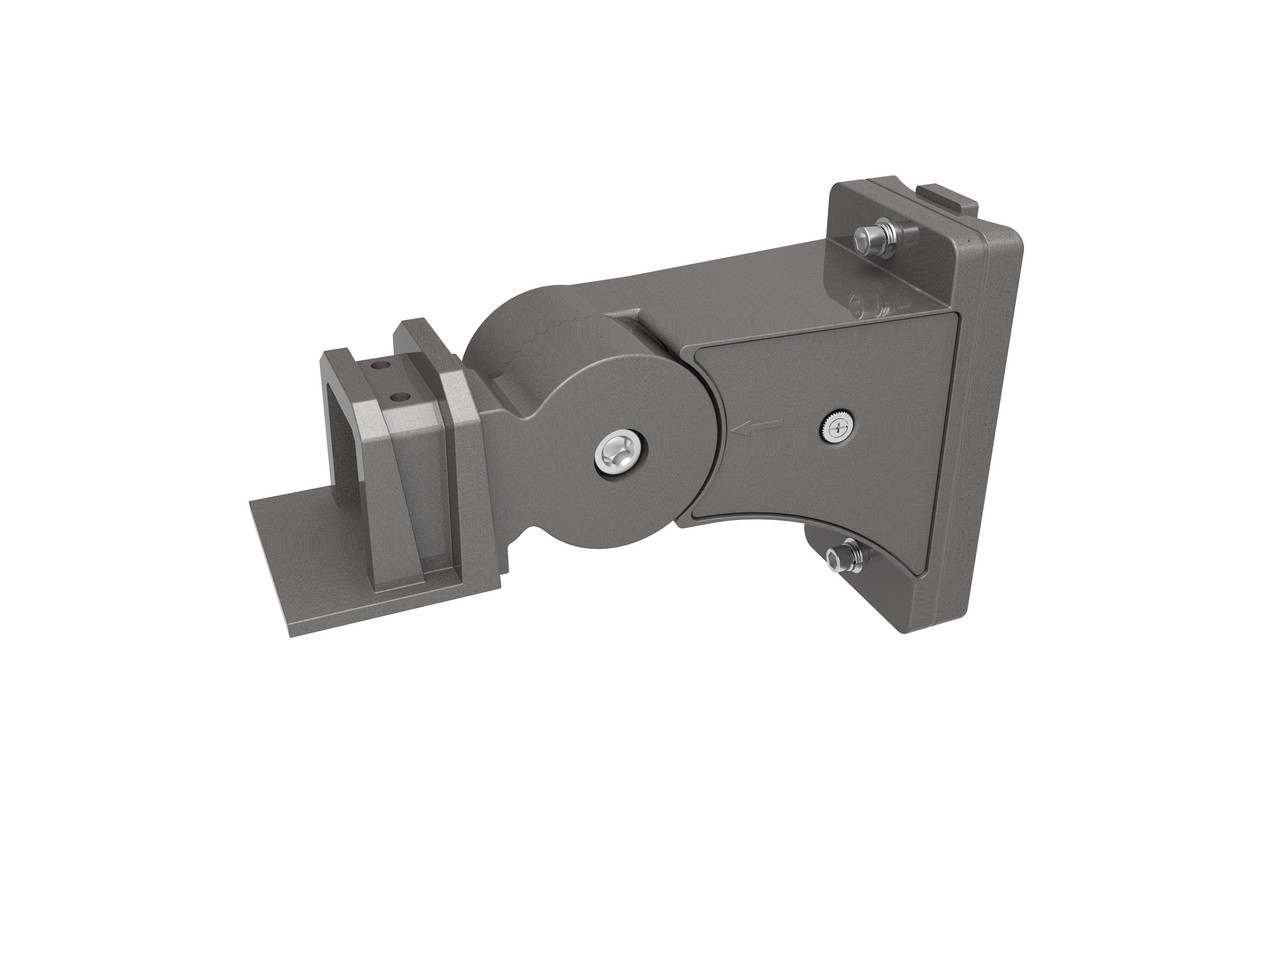 Adjustable Square or Round Mount